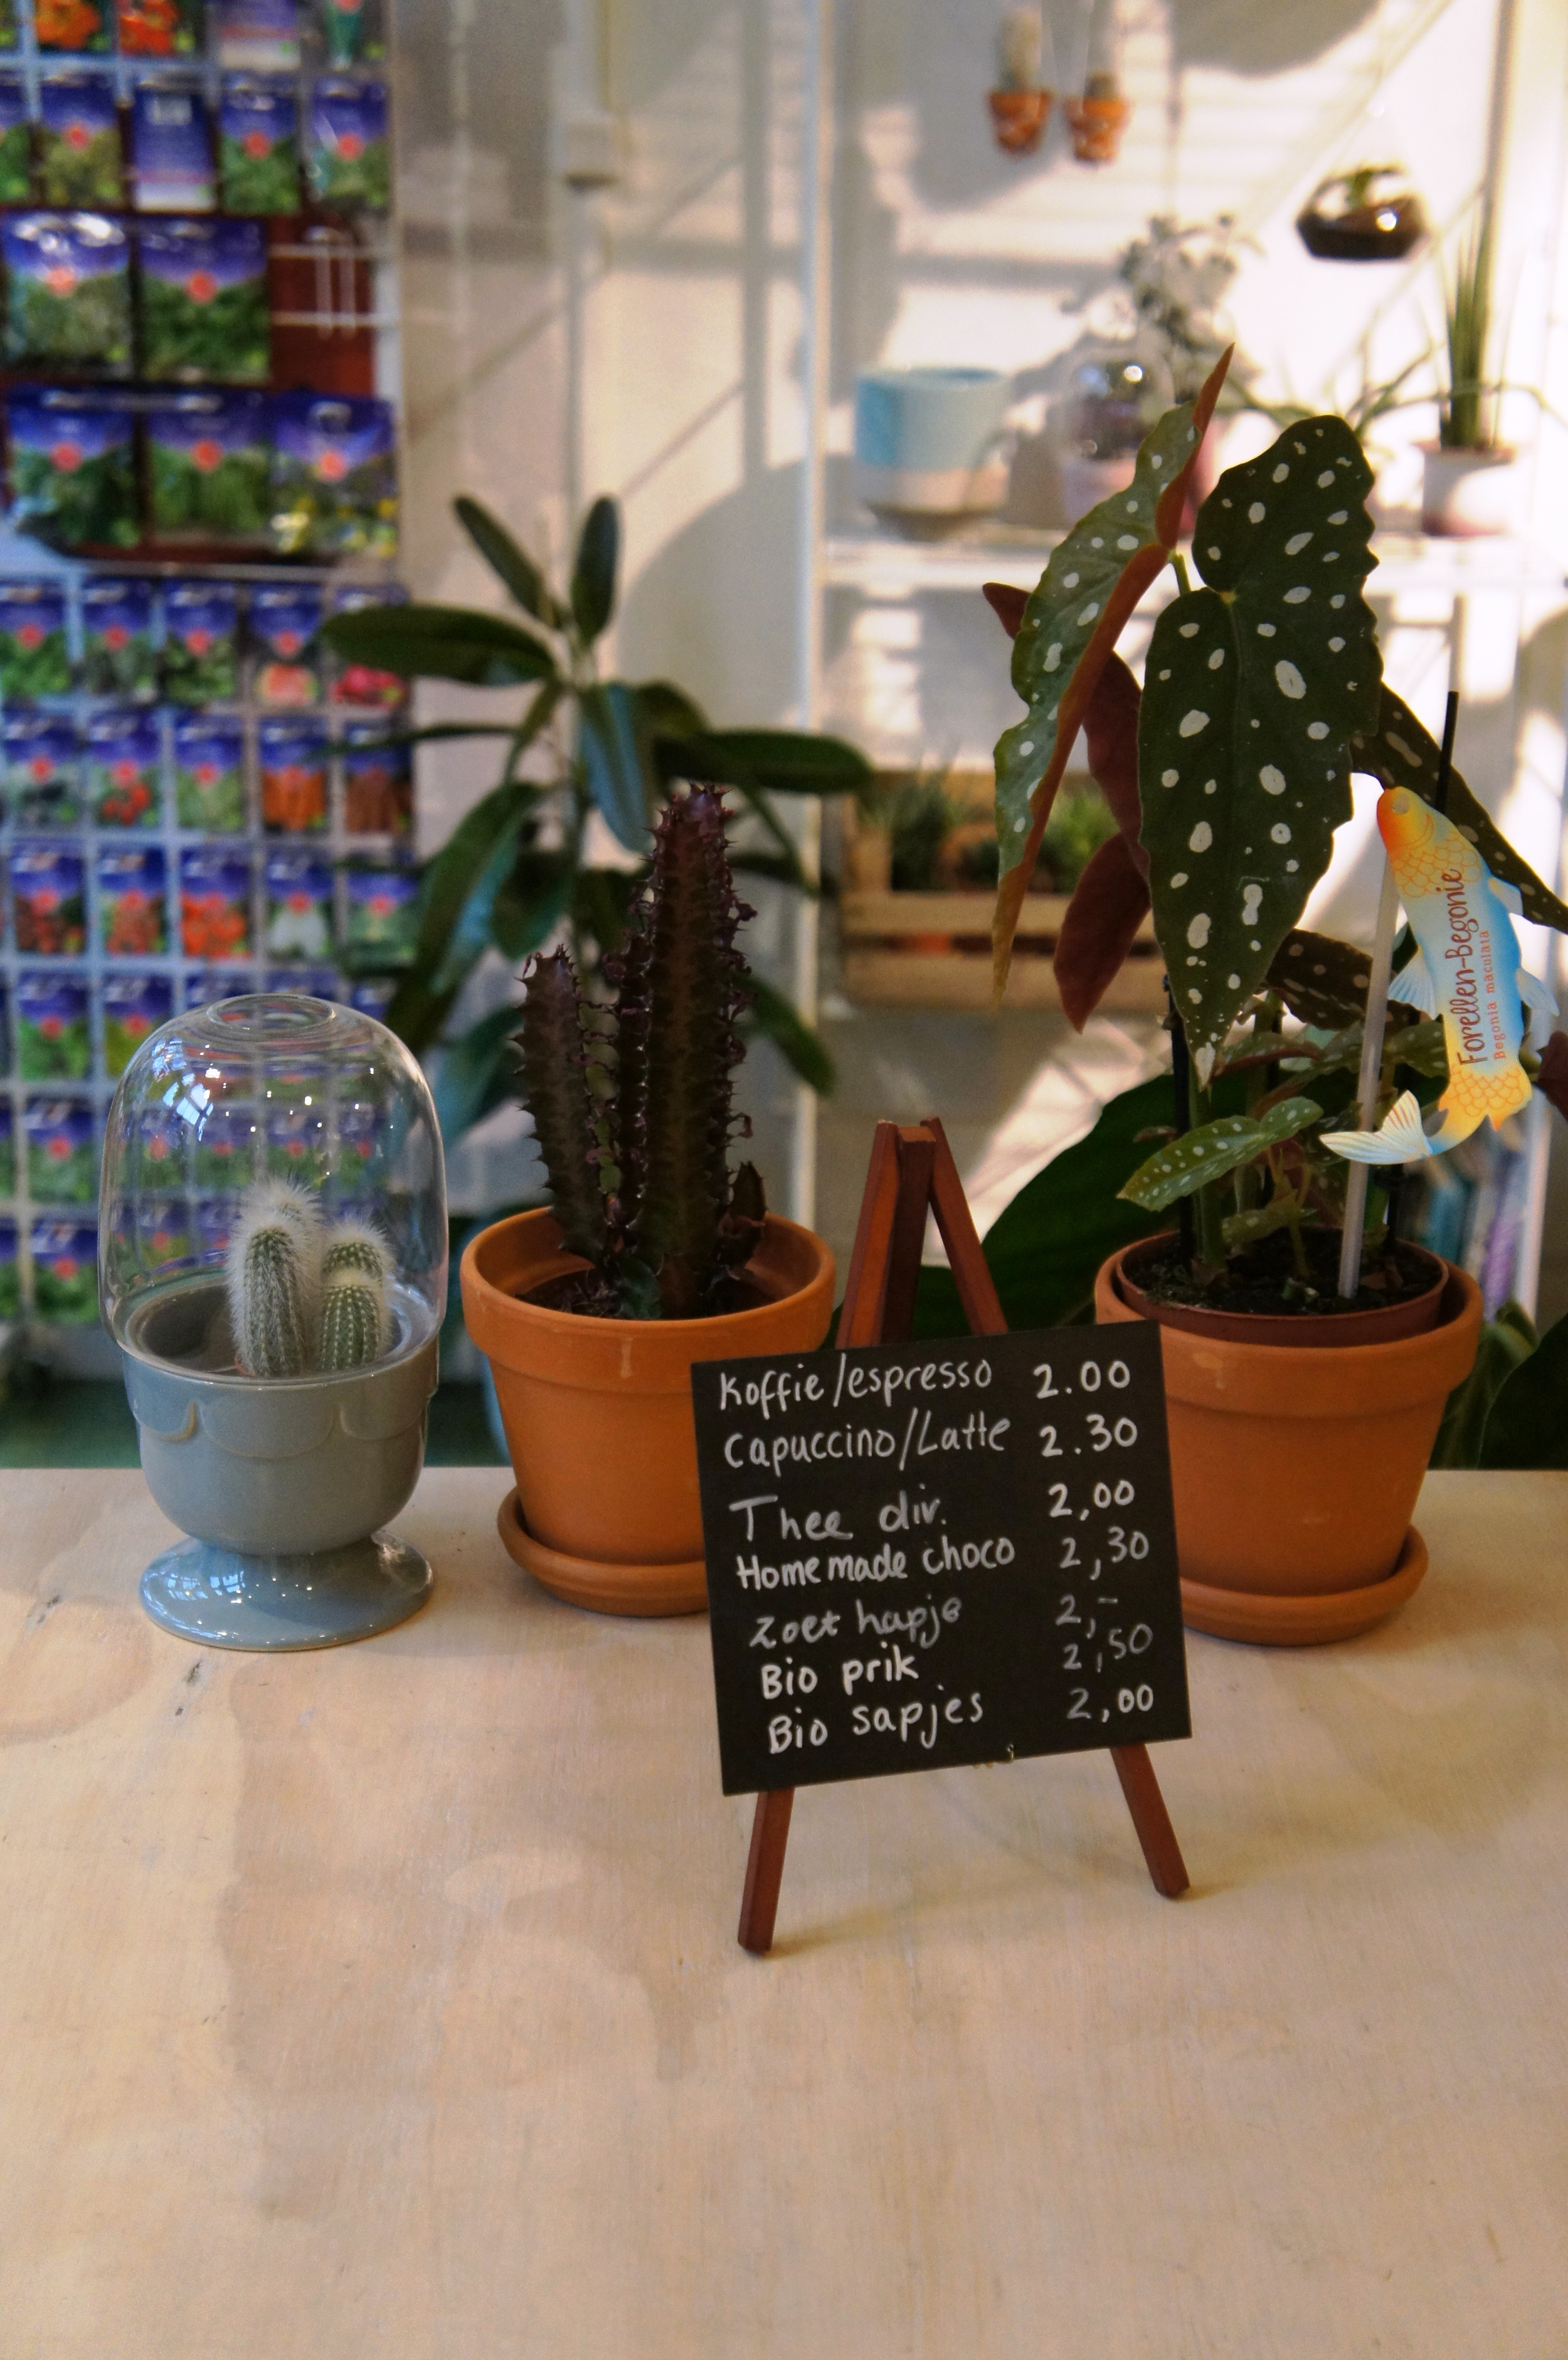 Cacti and houseplant on cafe table in Wildernis, Amsterdam